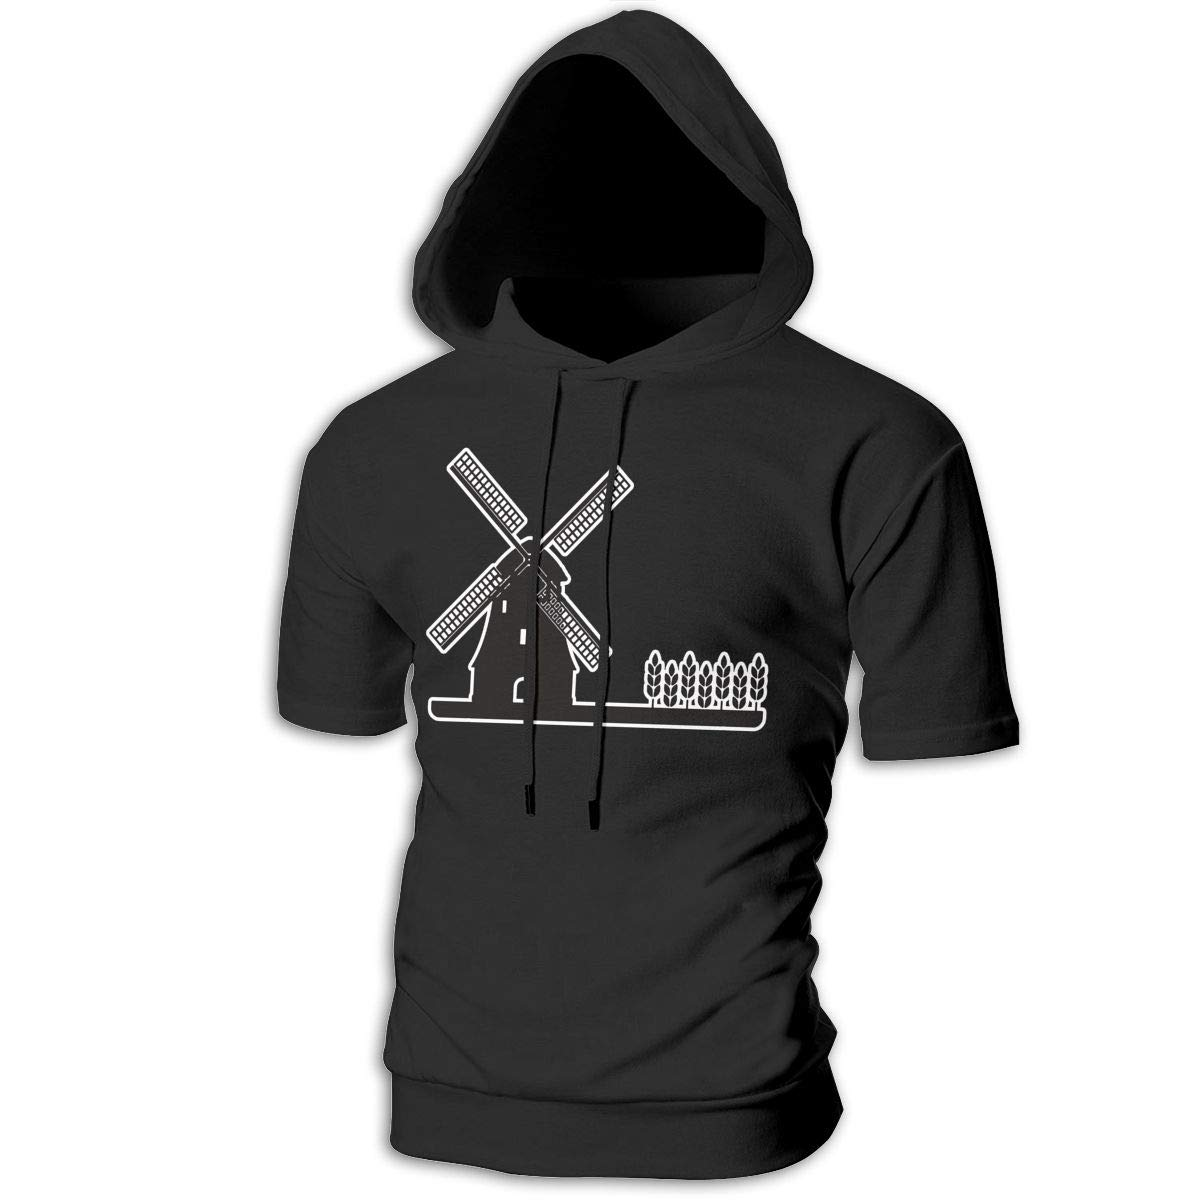 MZ-HY Holland Windmill Mens Hipster Short Sleeve Hoodie Pullover Soft Hooded T-Shirt